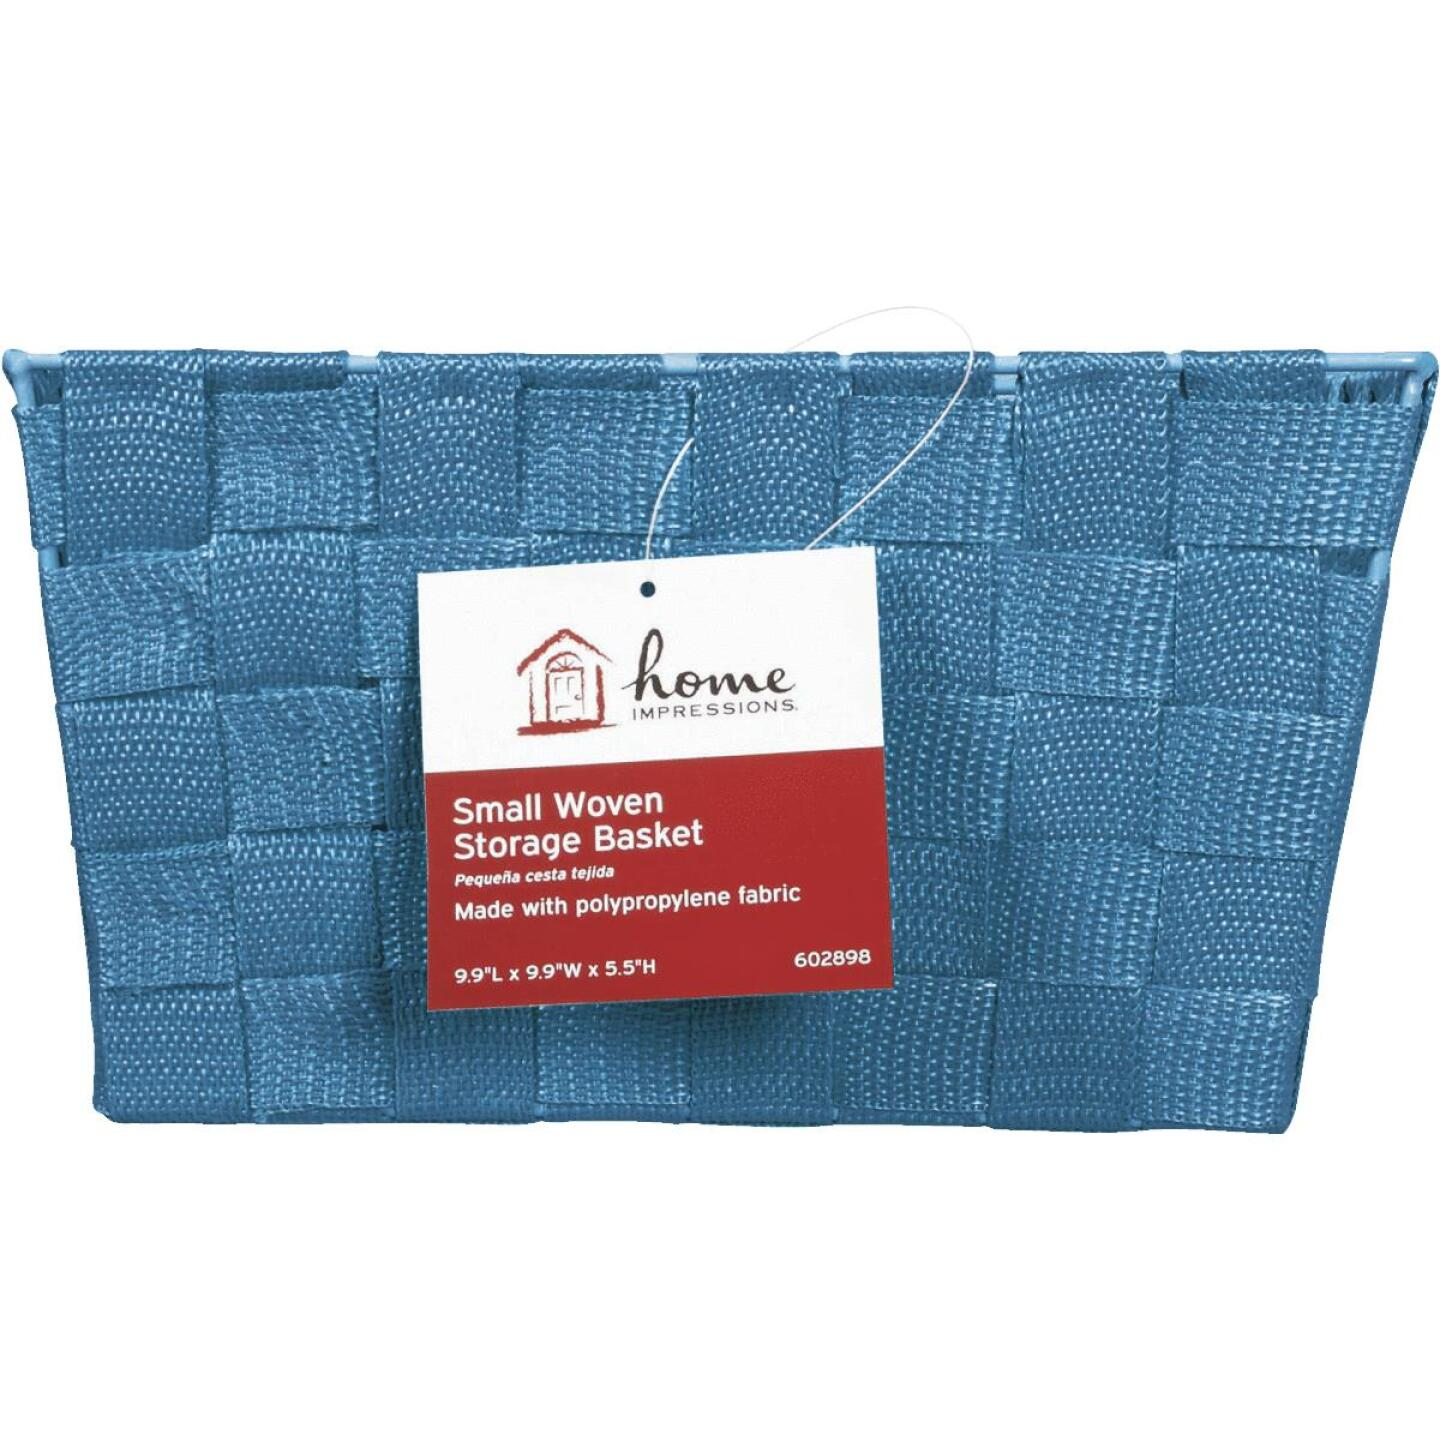 Home Impressions 9.75 In. x 5.5 In. H. Woven Storage Basket, Blue Image 2